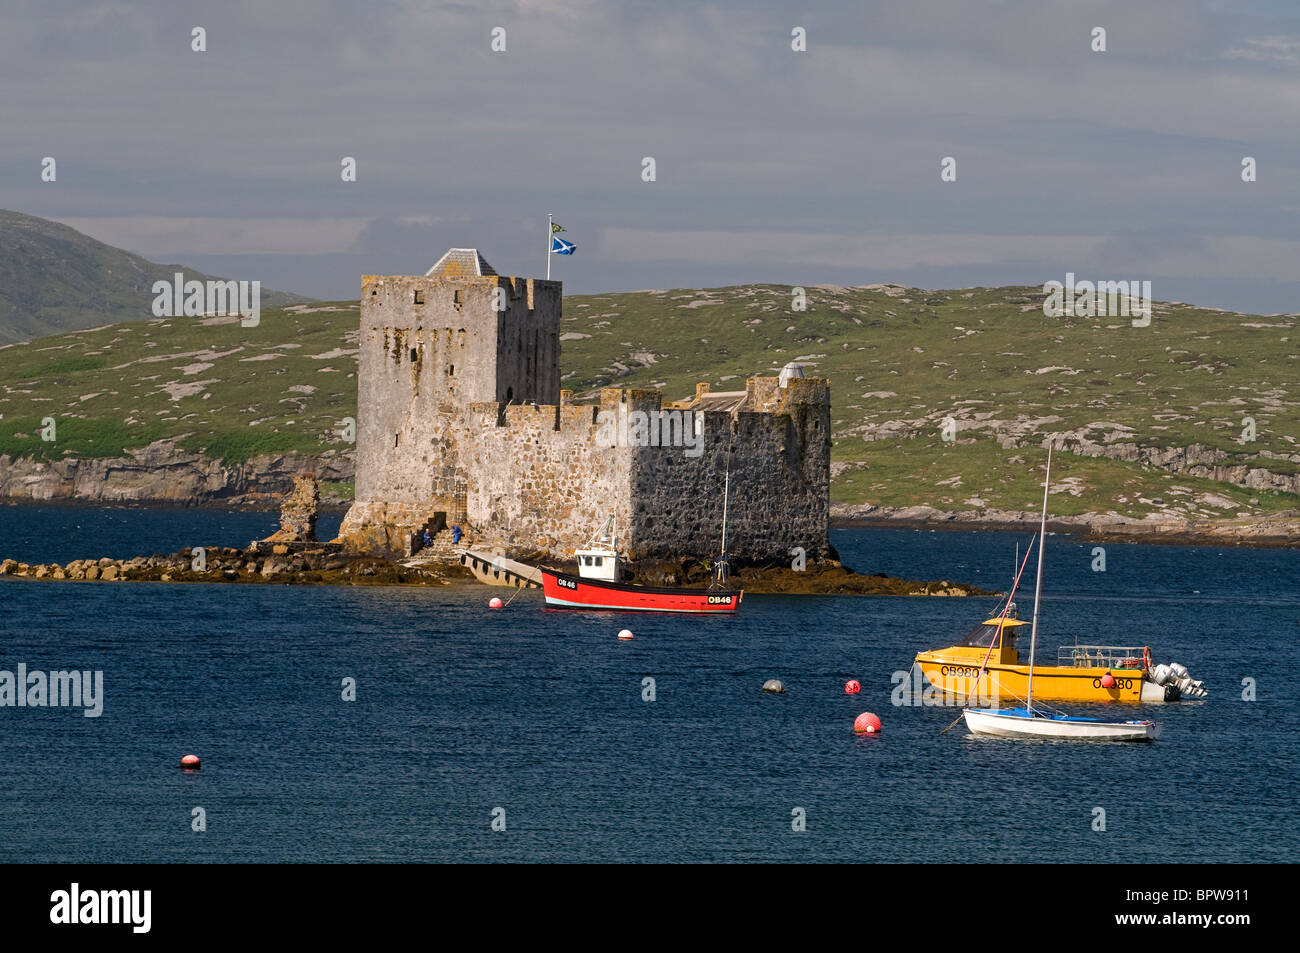 Kisimul Castle sits in Castlebay on the Island of Barra, Outer Hebrides Western Isles. Scotland.  SCO 6529 - Stock Image